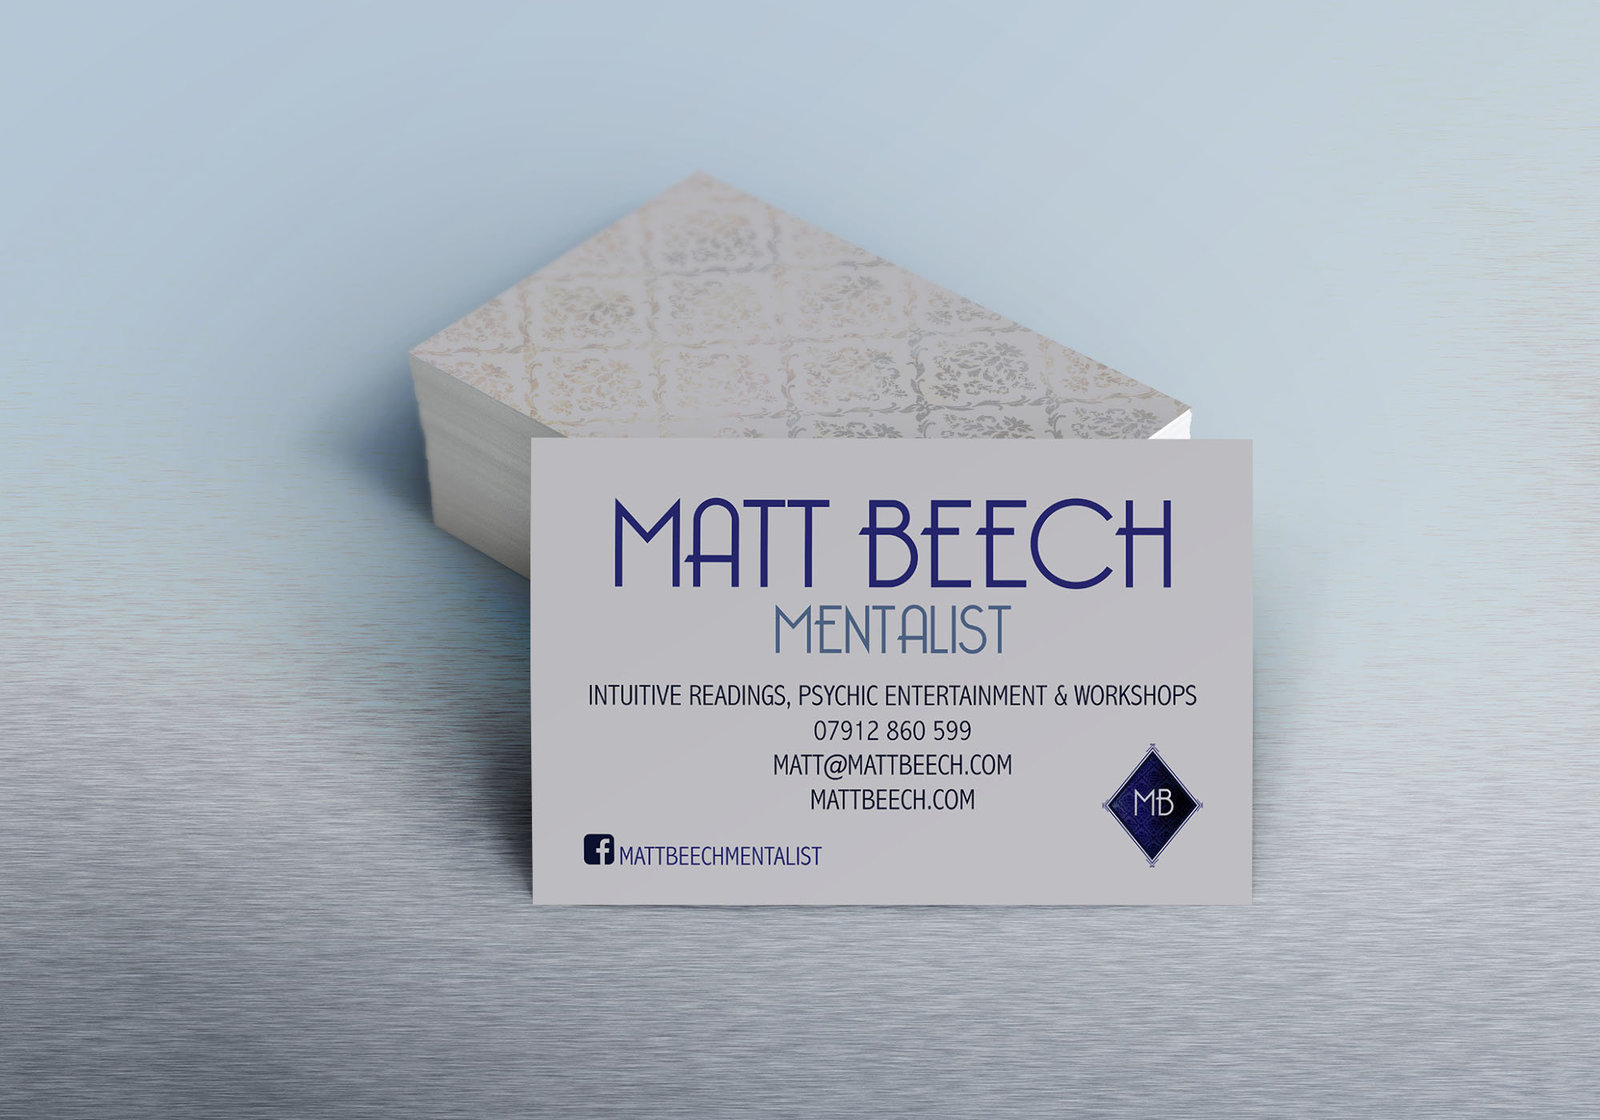 Business-card-mockup-MB